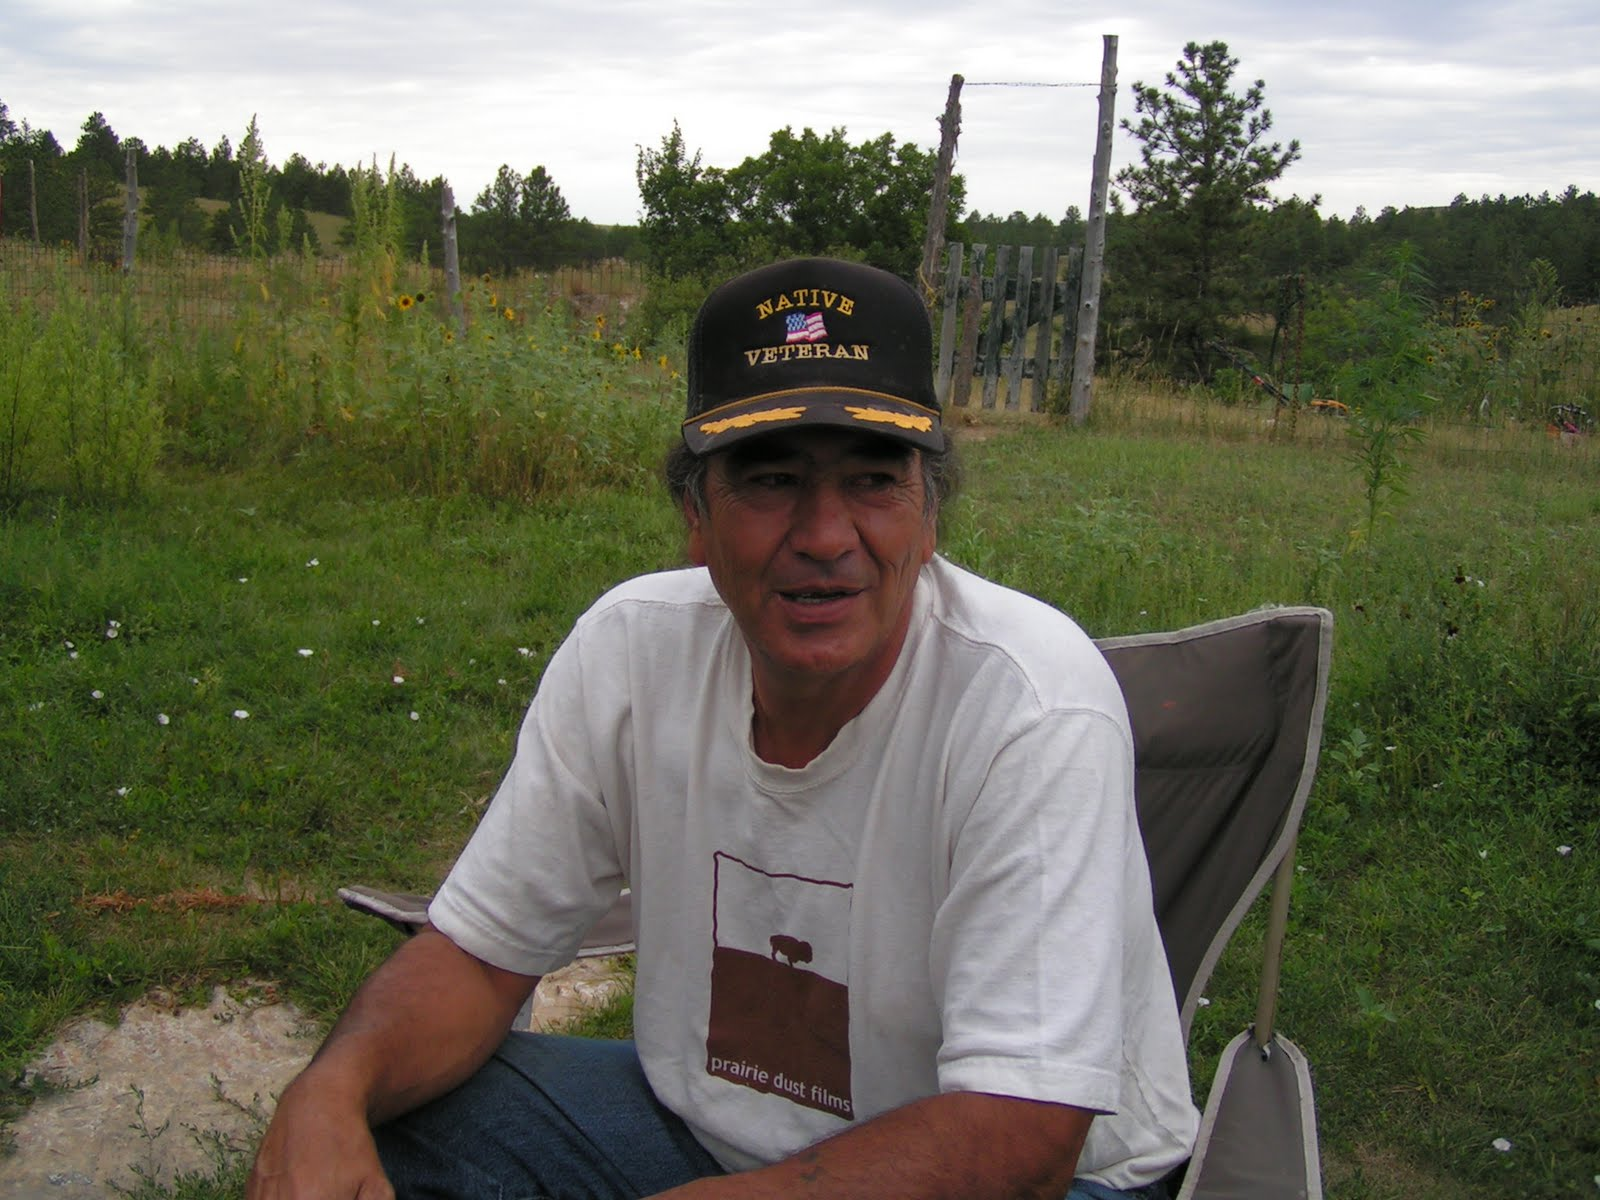 Lakota Country Times: Alex White Plume wins round in hemp case